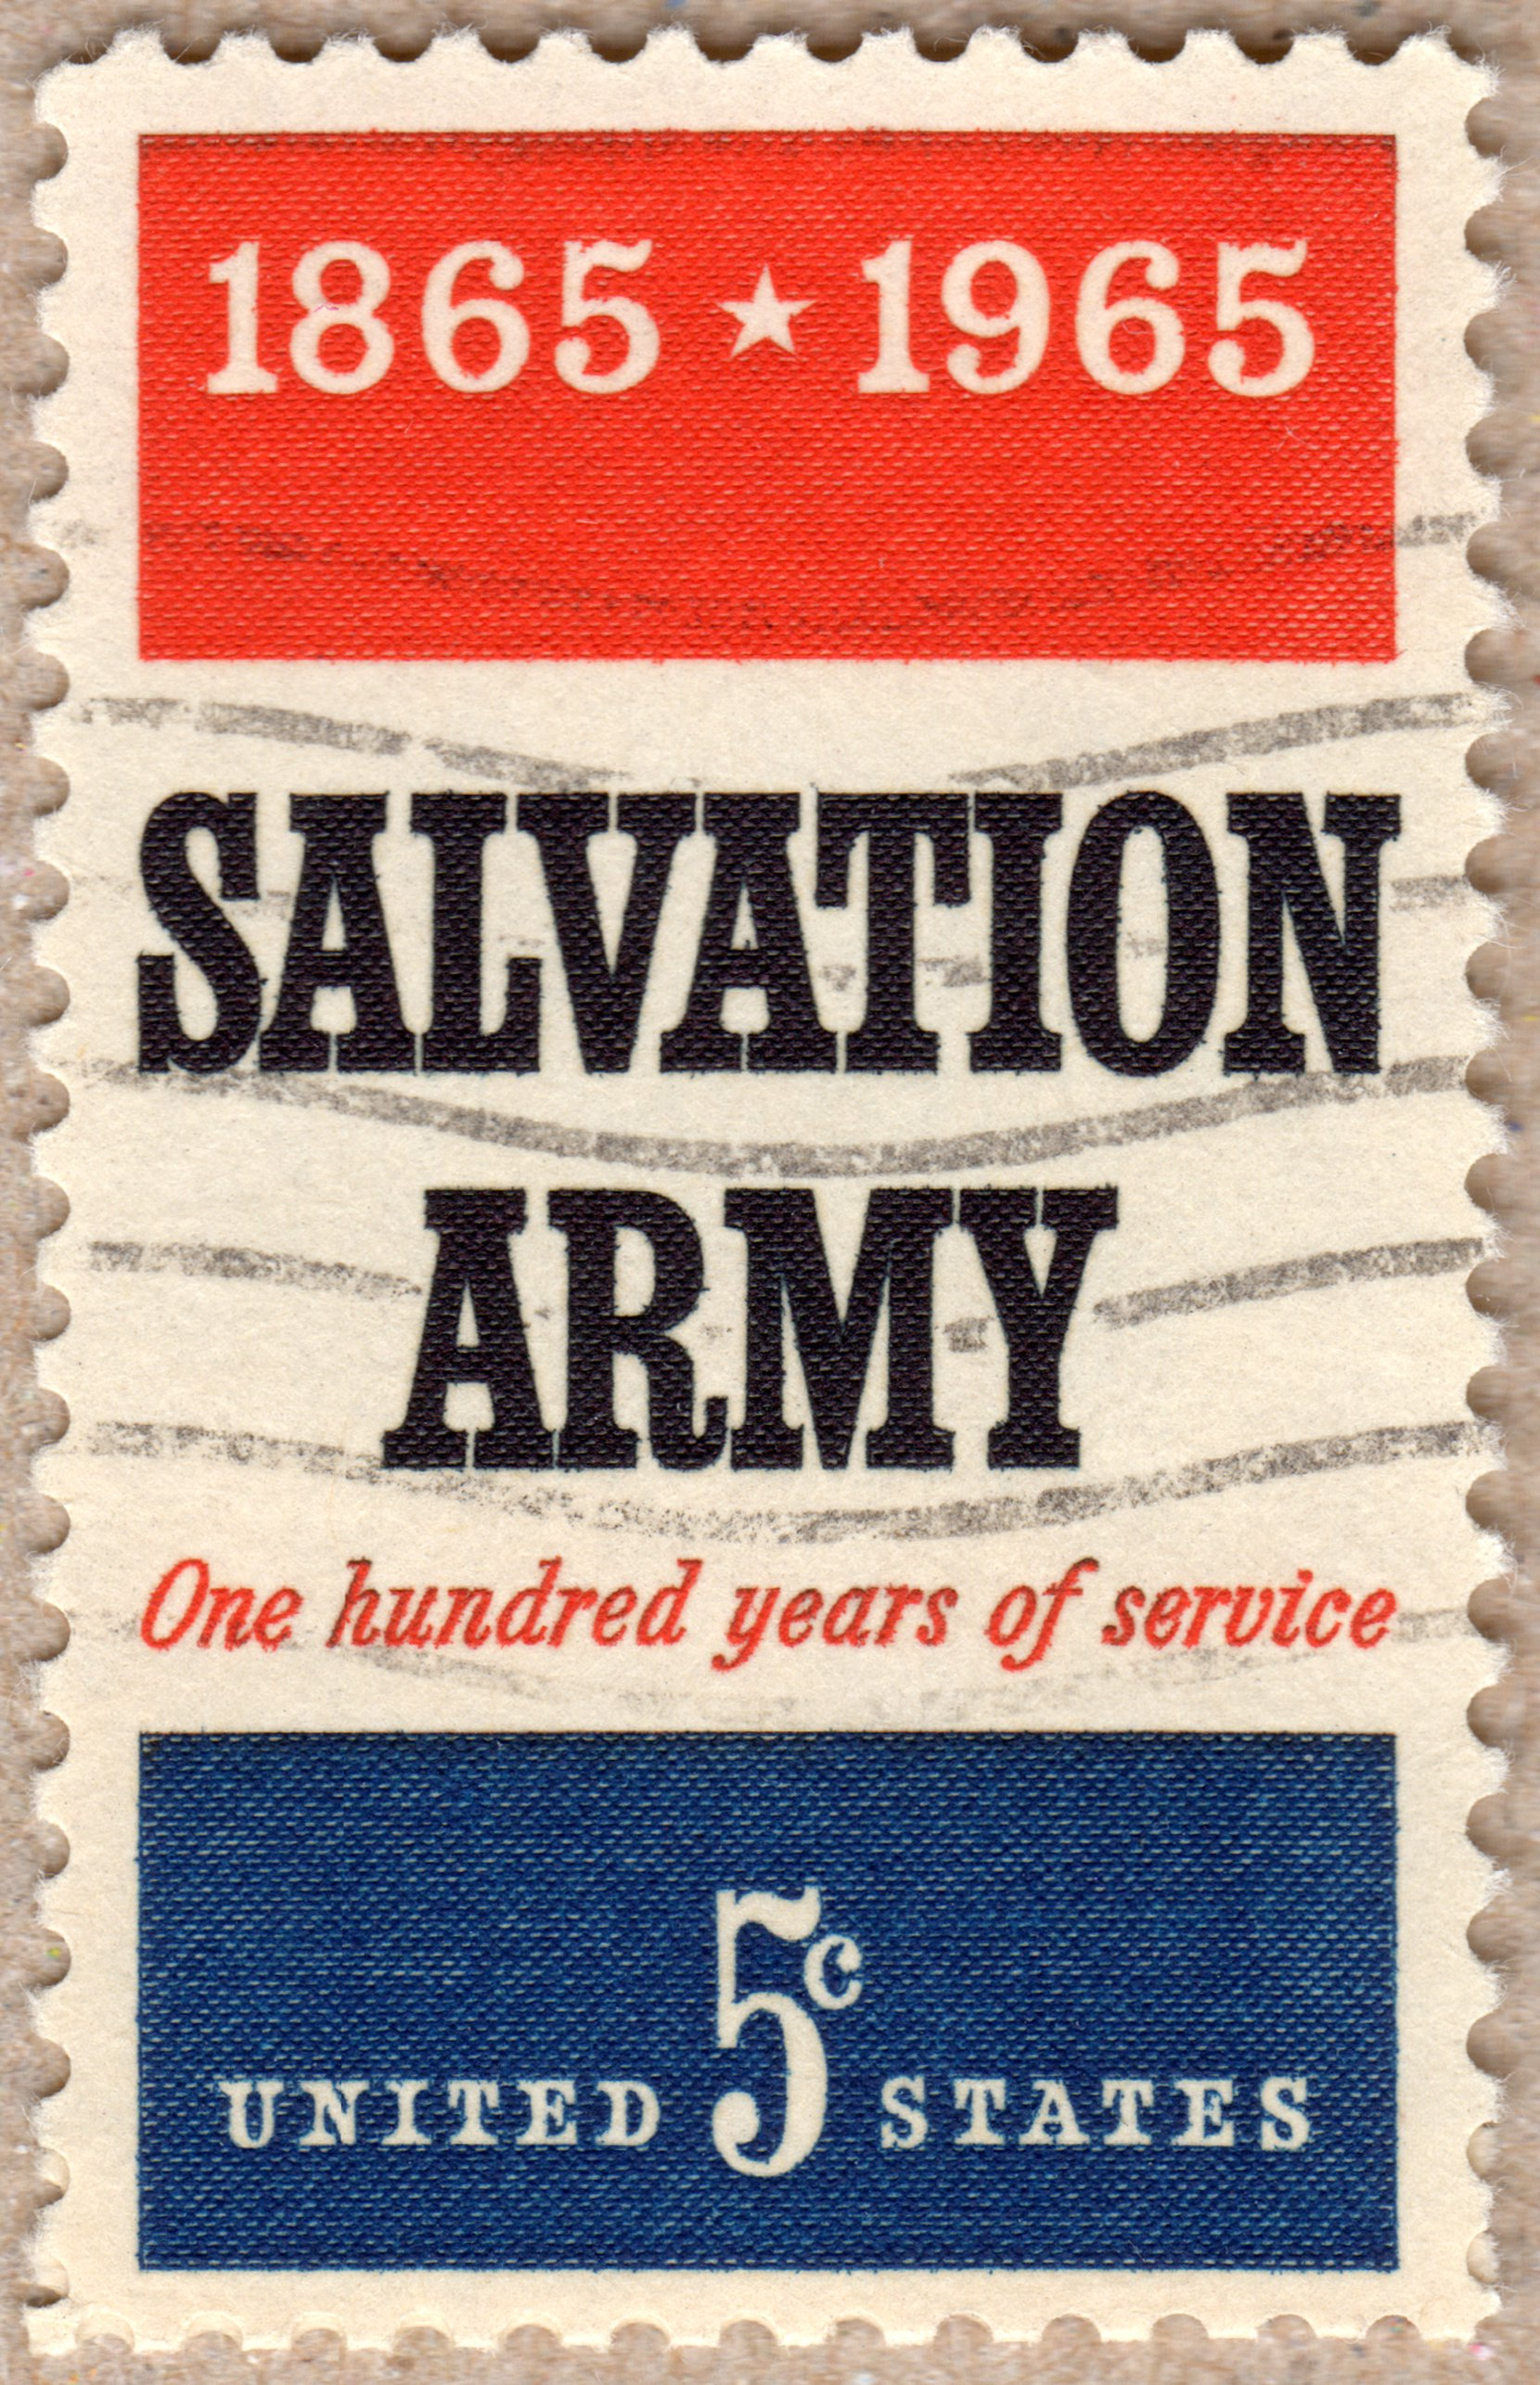 salvation army 5¢ u.s. postage stamp philately postage stamps